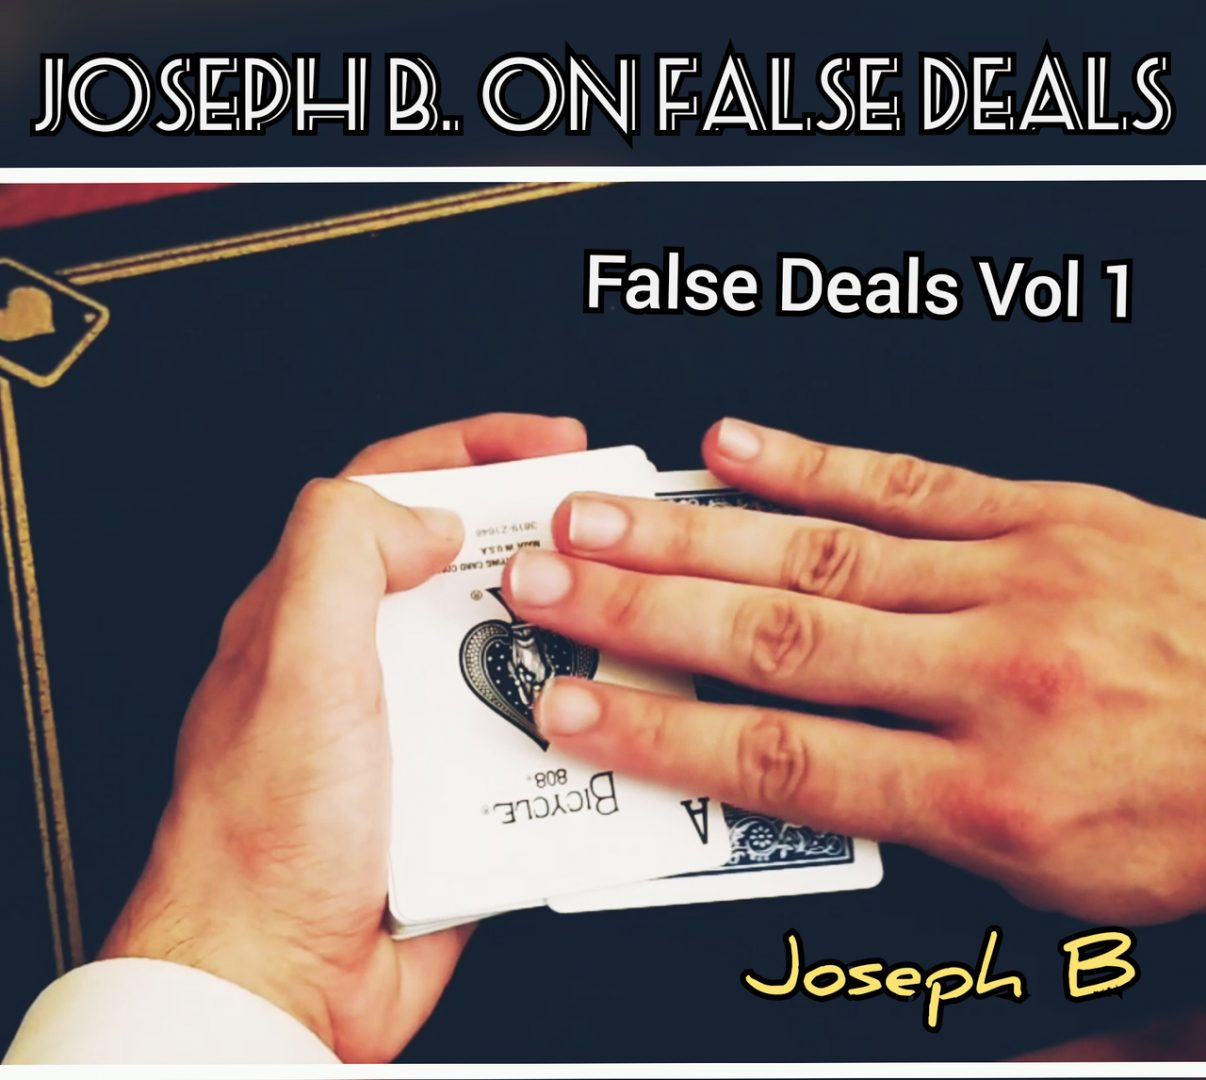 Joseph B. on False Deals Vol.1 (MP4 Videos Download)